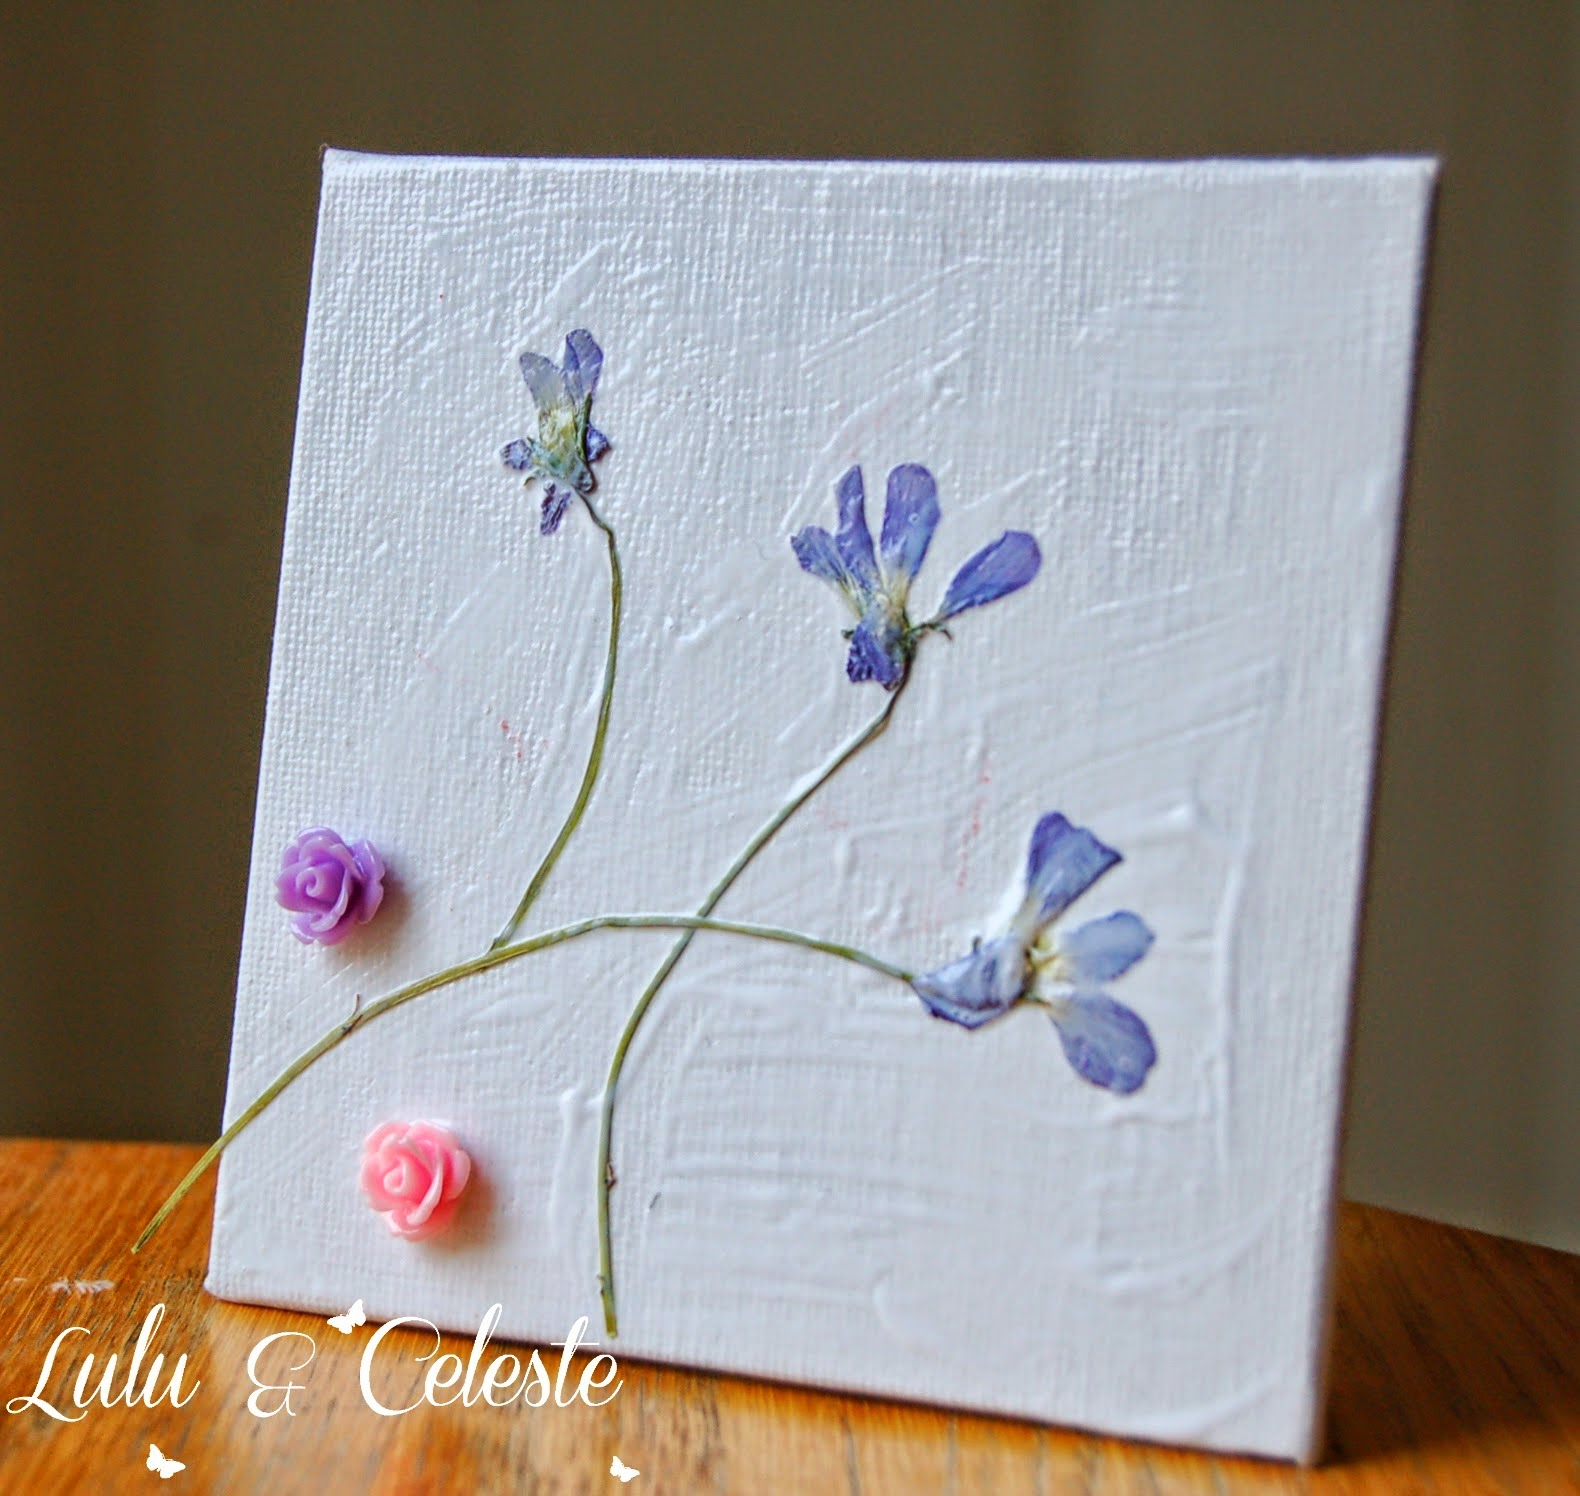 http://luluandceleste.blogspot.ca/2014/07/pressed-flower-artwork-for-children.html